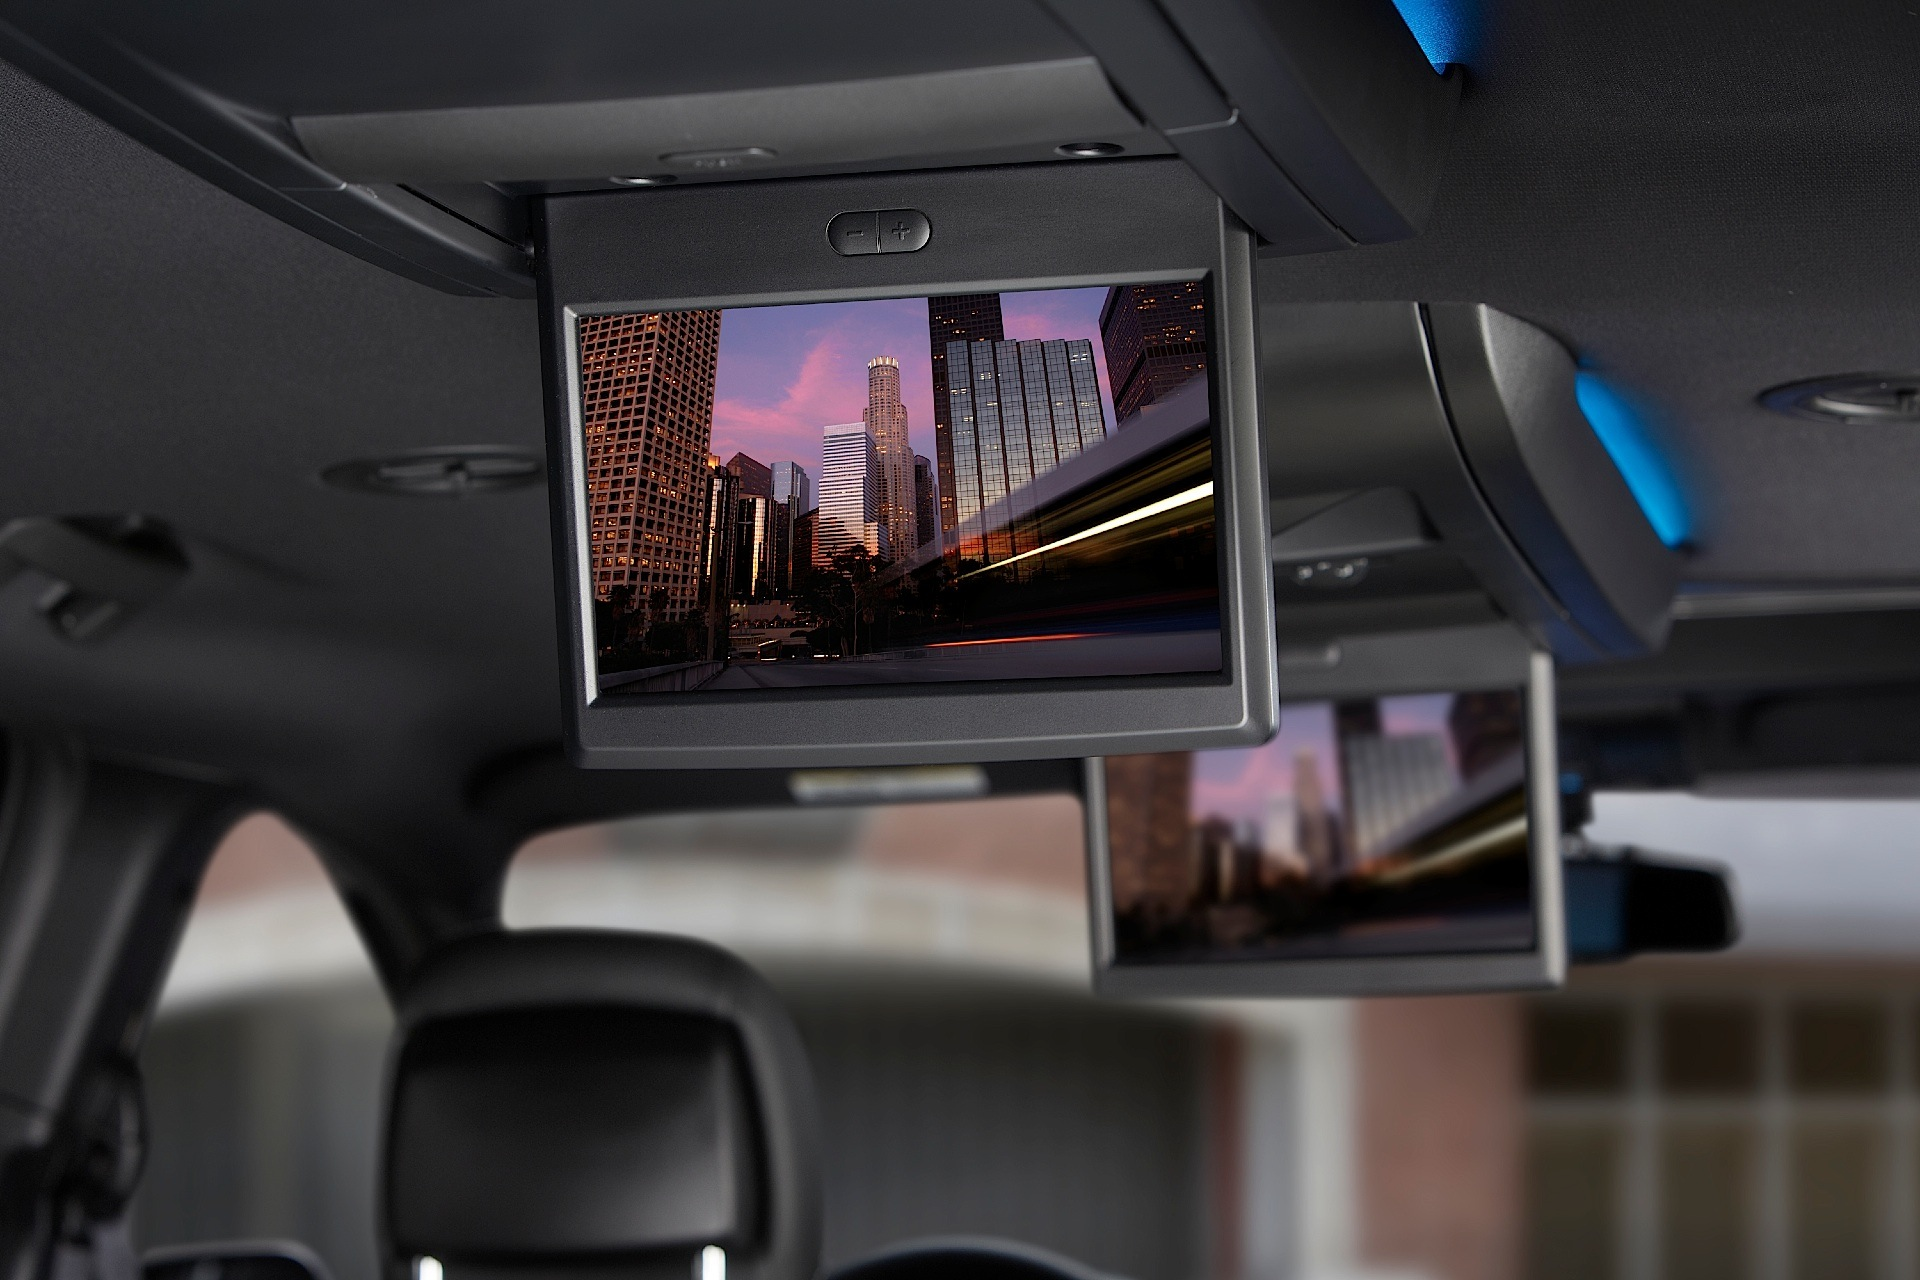 2009 chrysler town and country dvd system